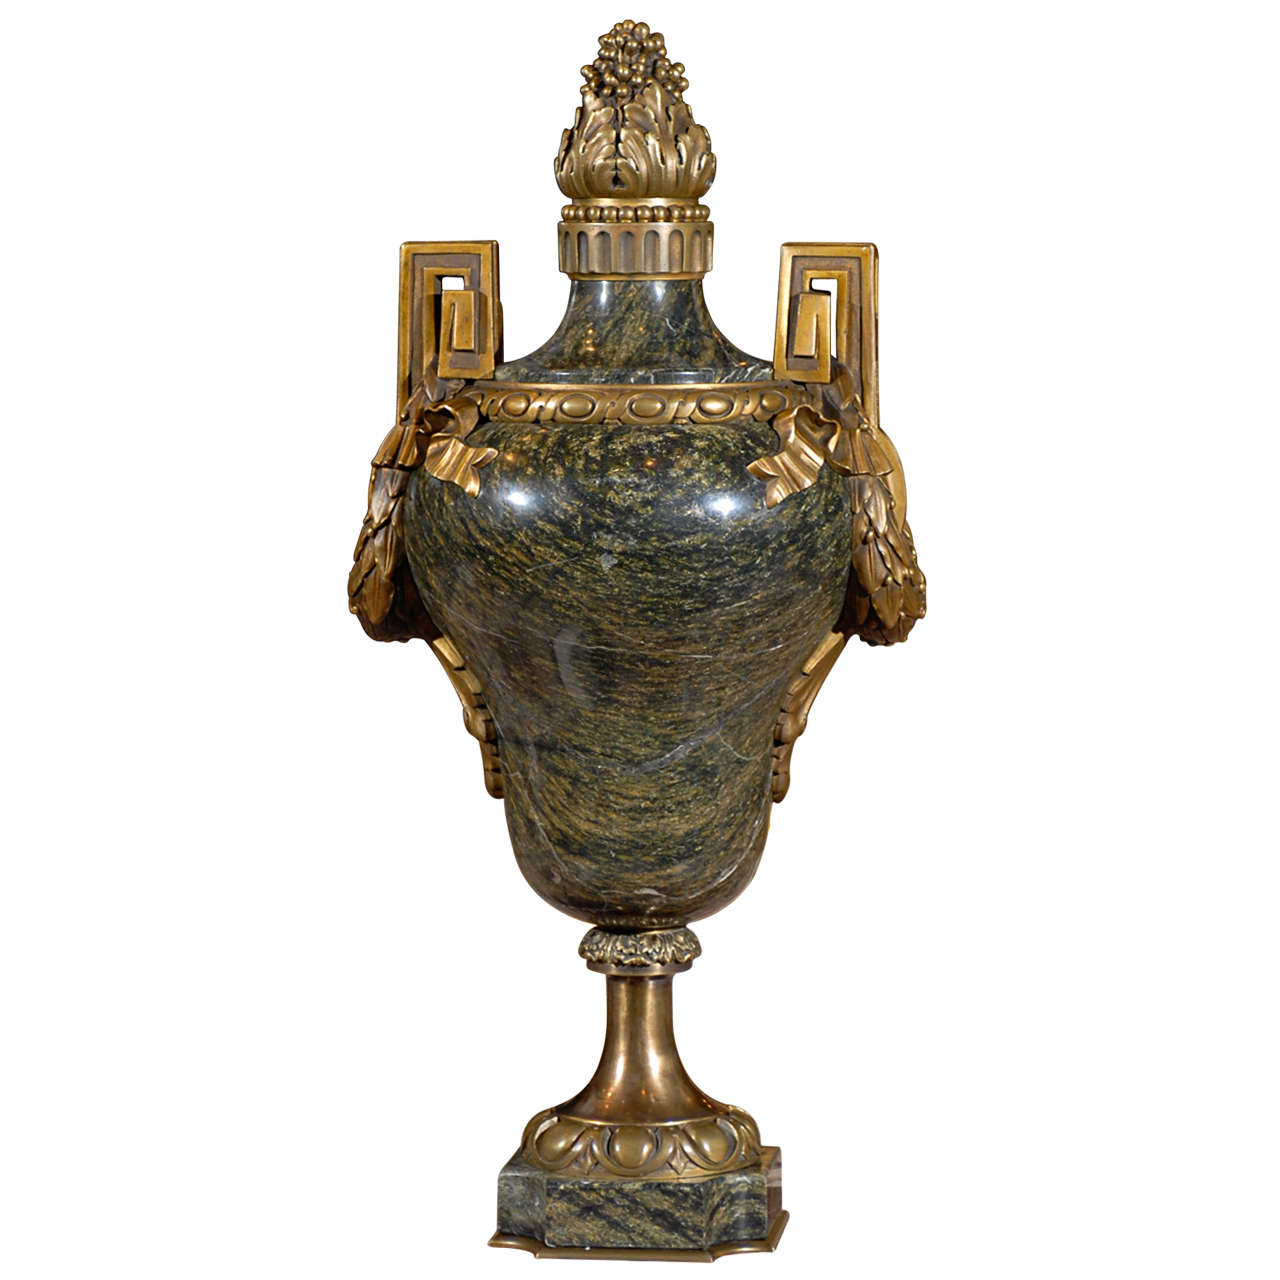 Antique Bronze and marble urn